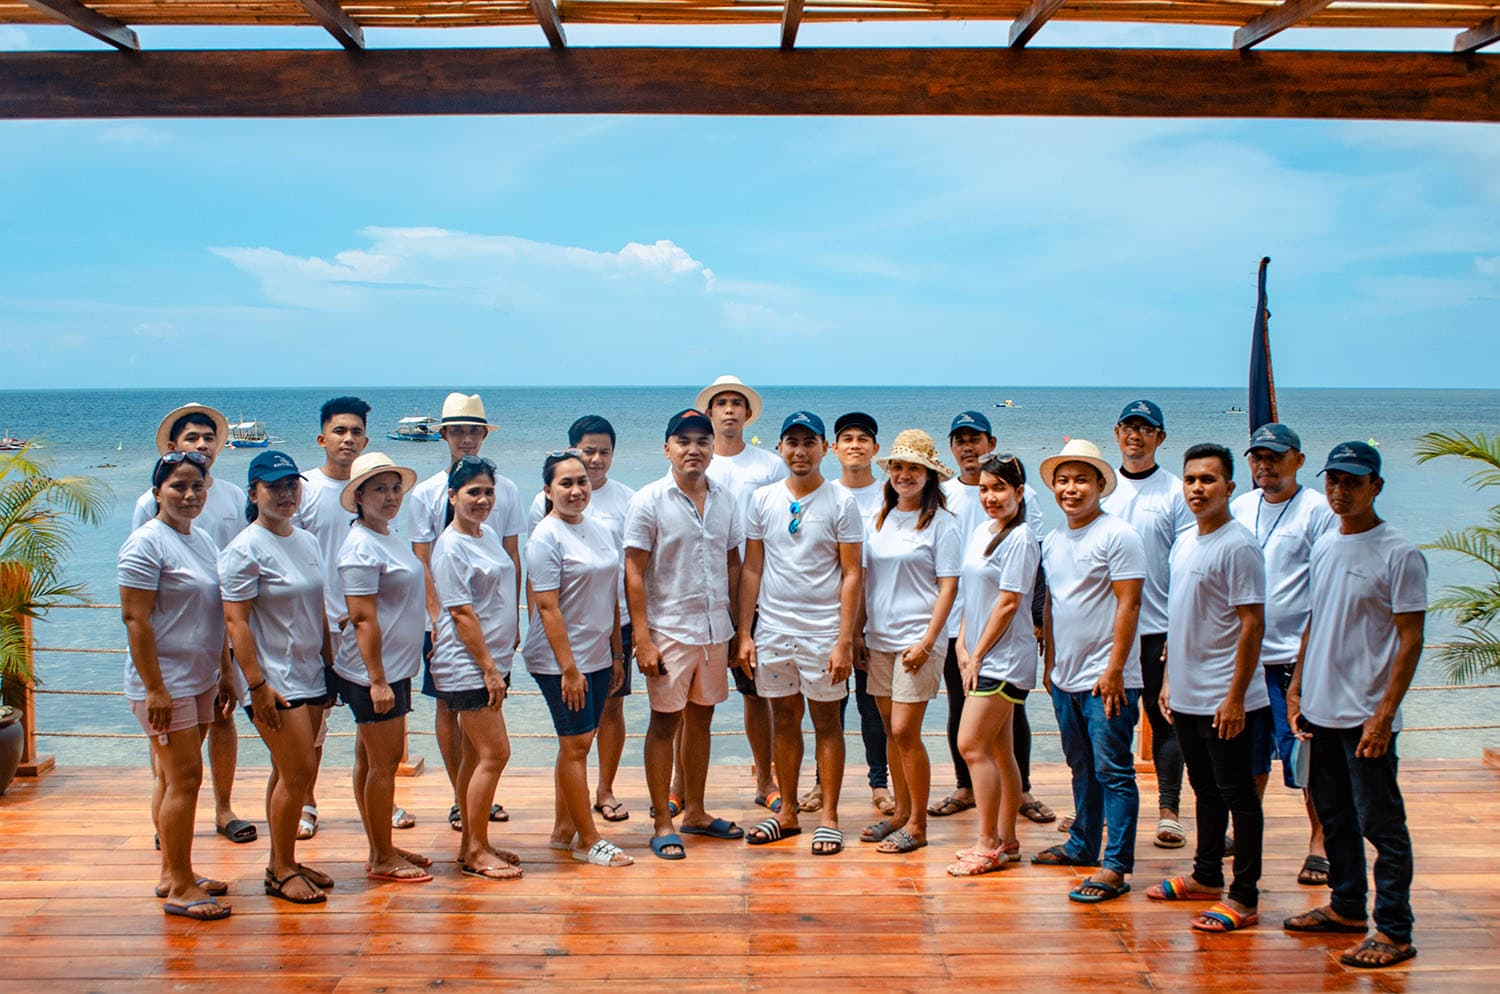 Bawbawon-beach-resort-team